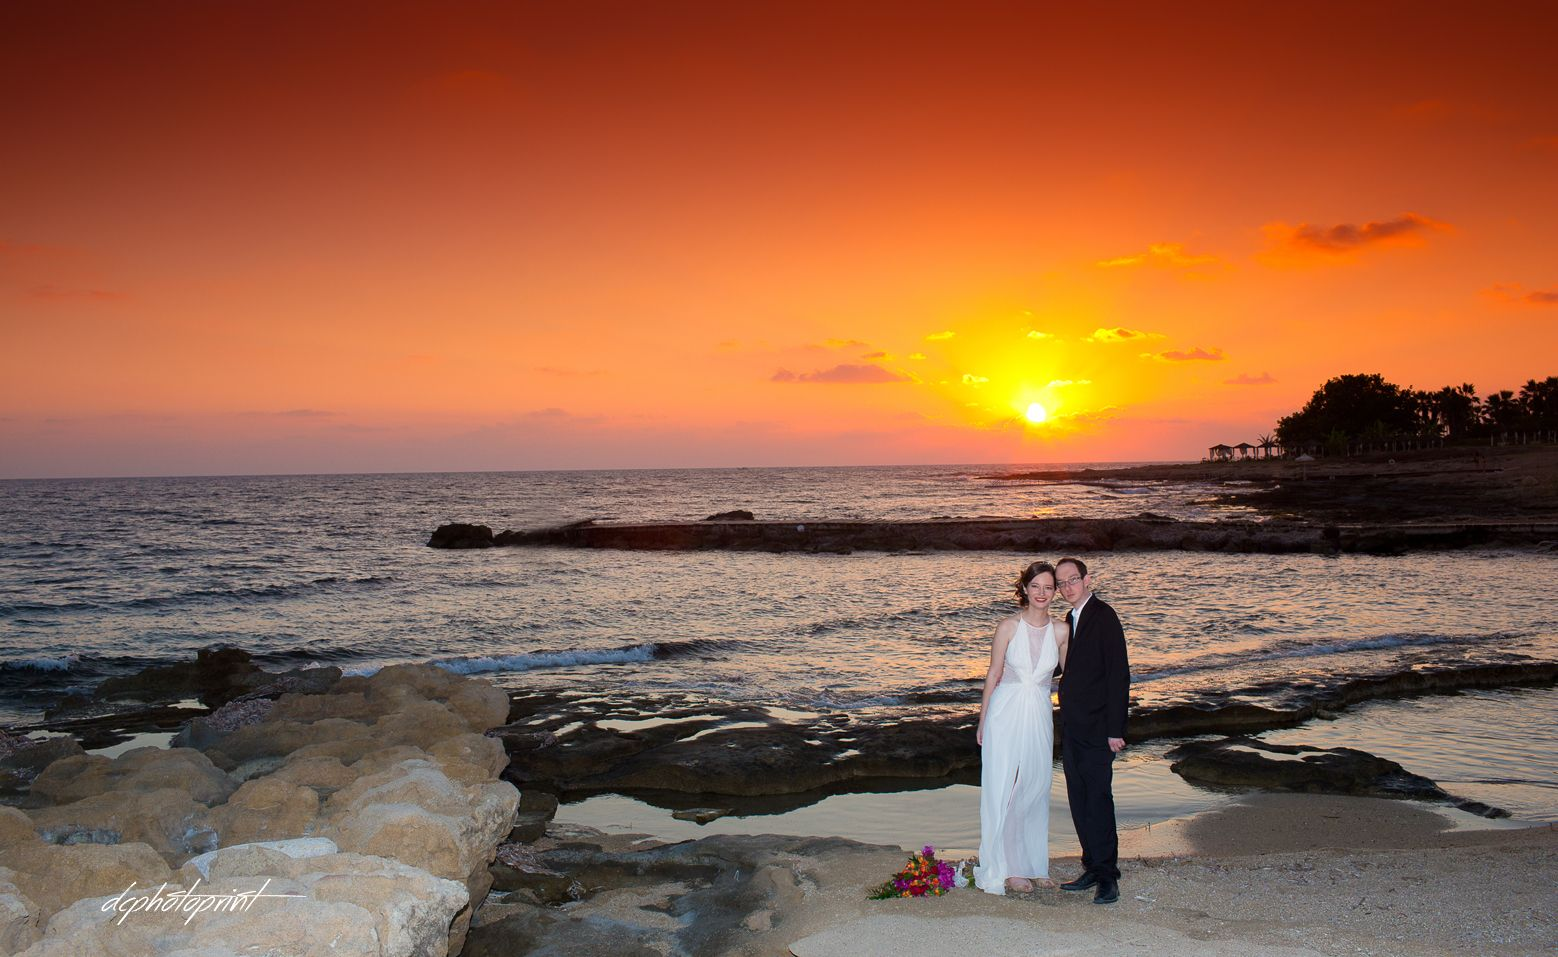 Www Dcphotoprint Com Cyprus Wedding Photography A Beautiful Wedding Location At Athena Beach Ho Beautiful Wedding Location Cyprus Wedding Wedding Photography